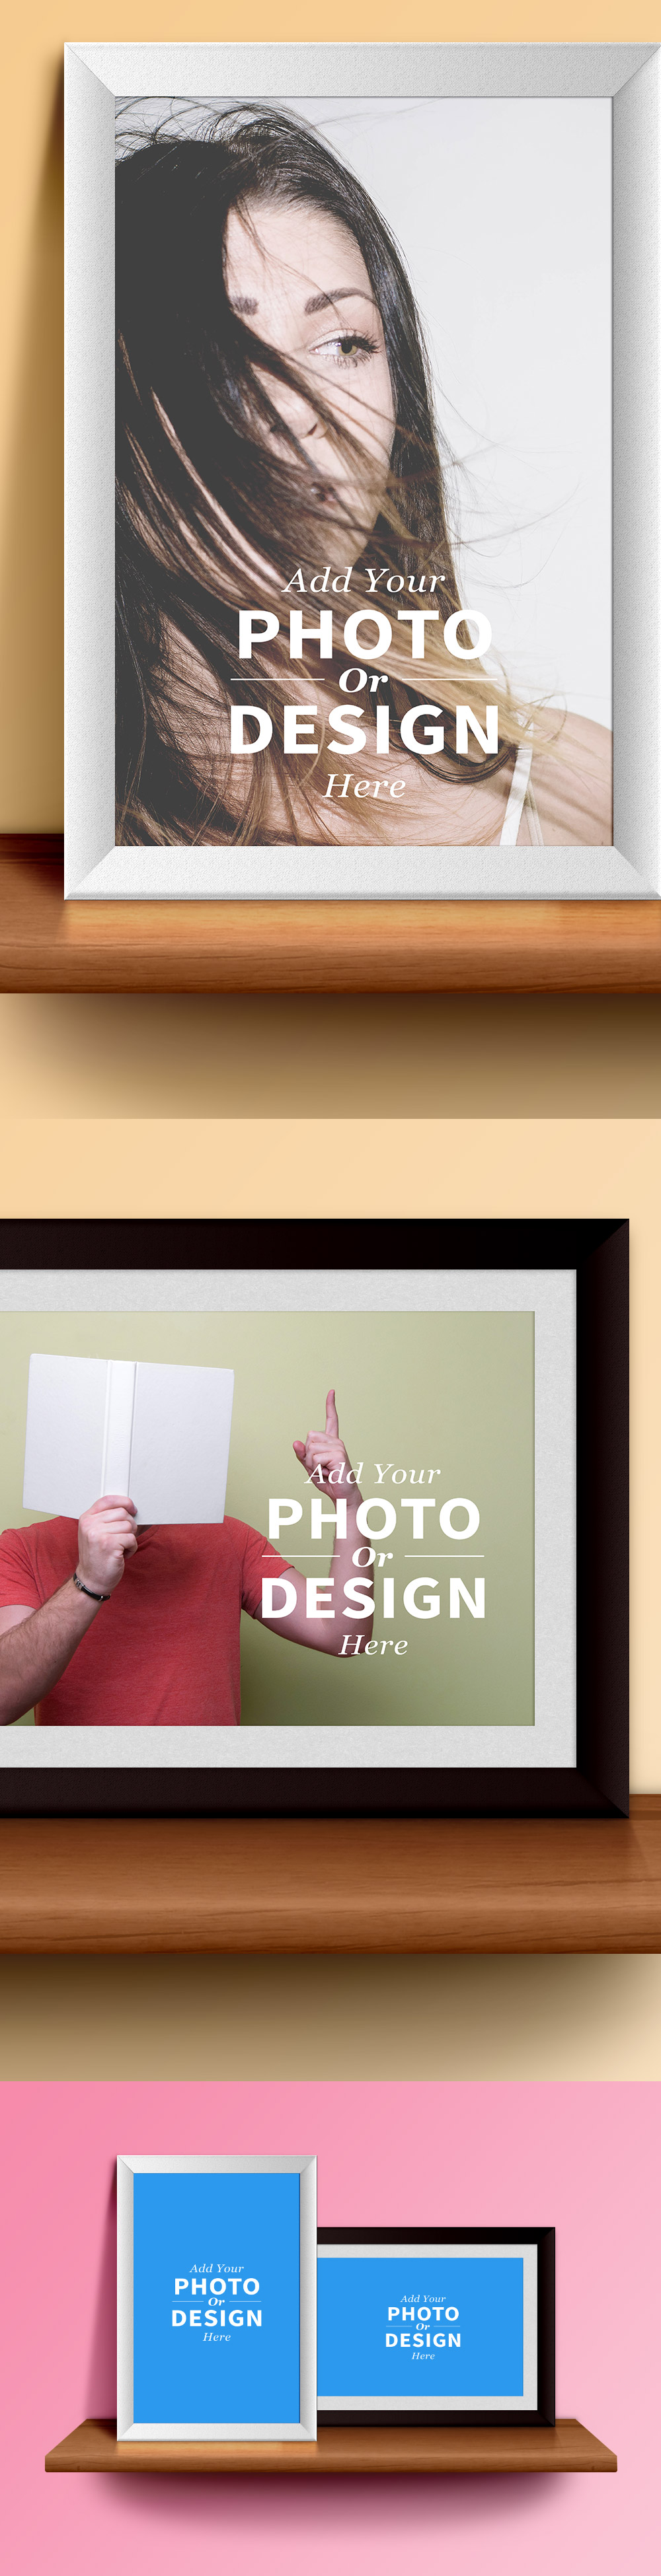 Photo Frames & Shelf PSD